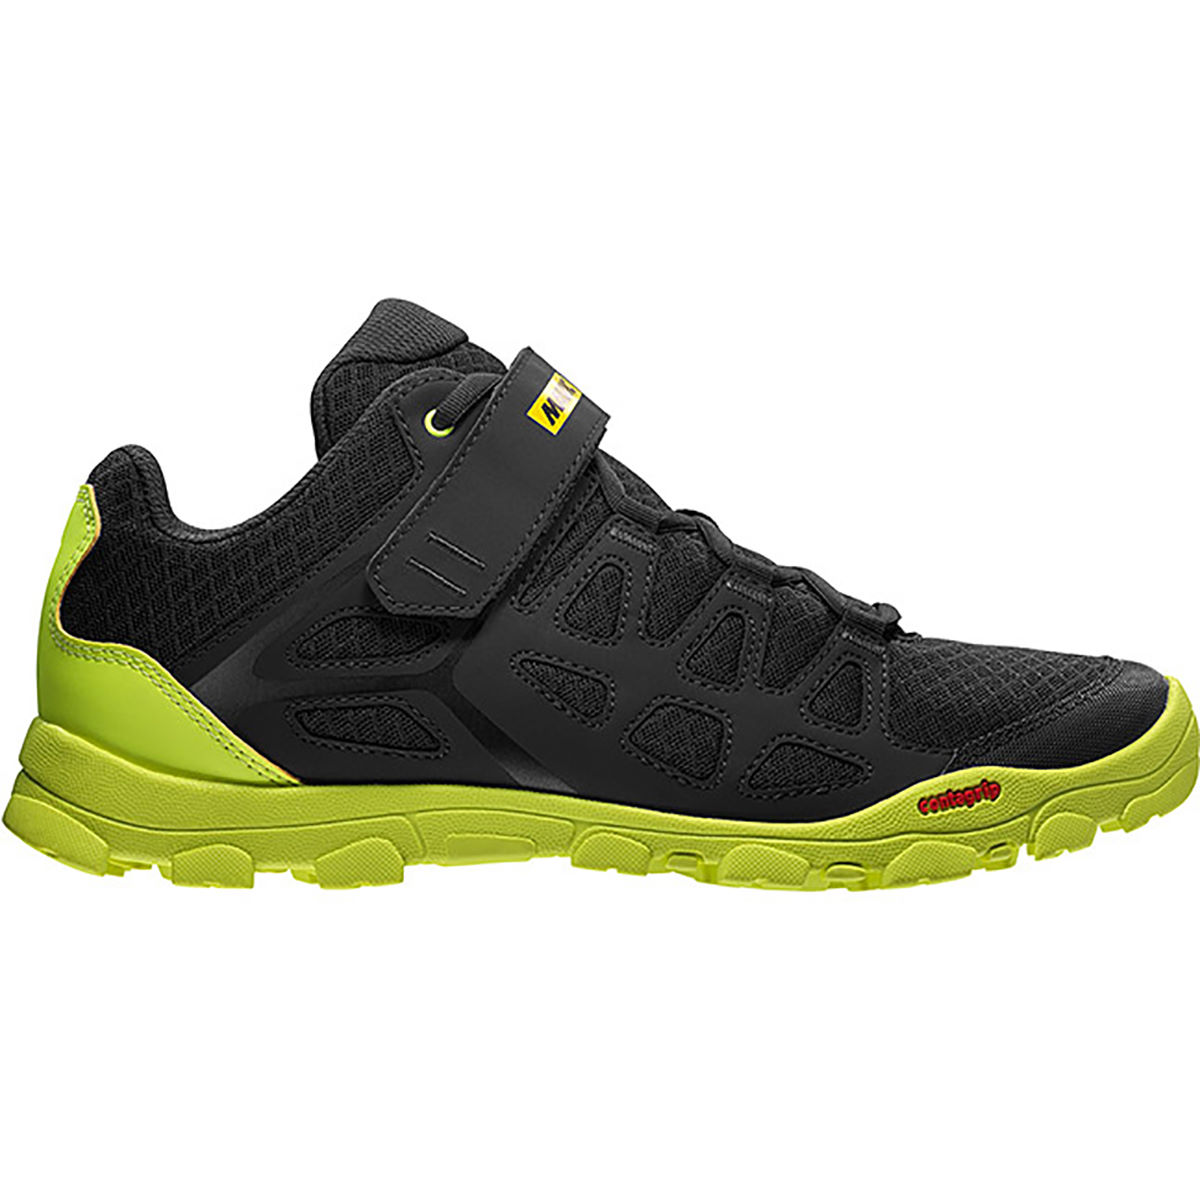 Chaussures VTT Mavic Crossride - 10.5 Pirate Black/Pirate